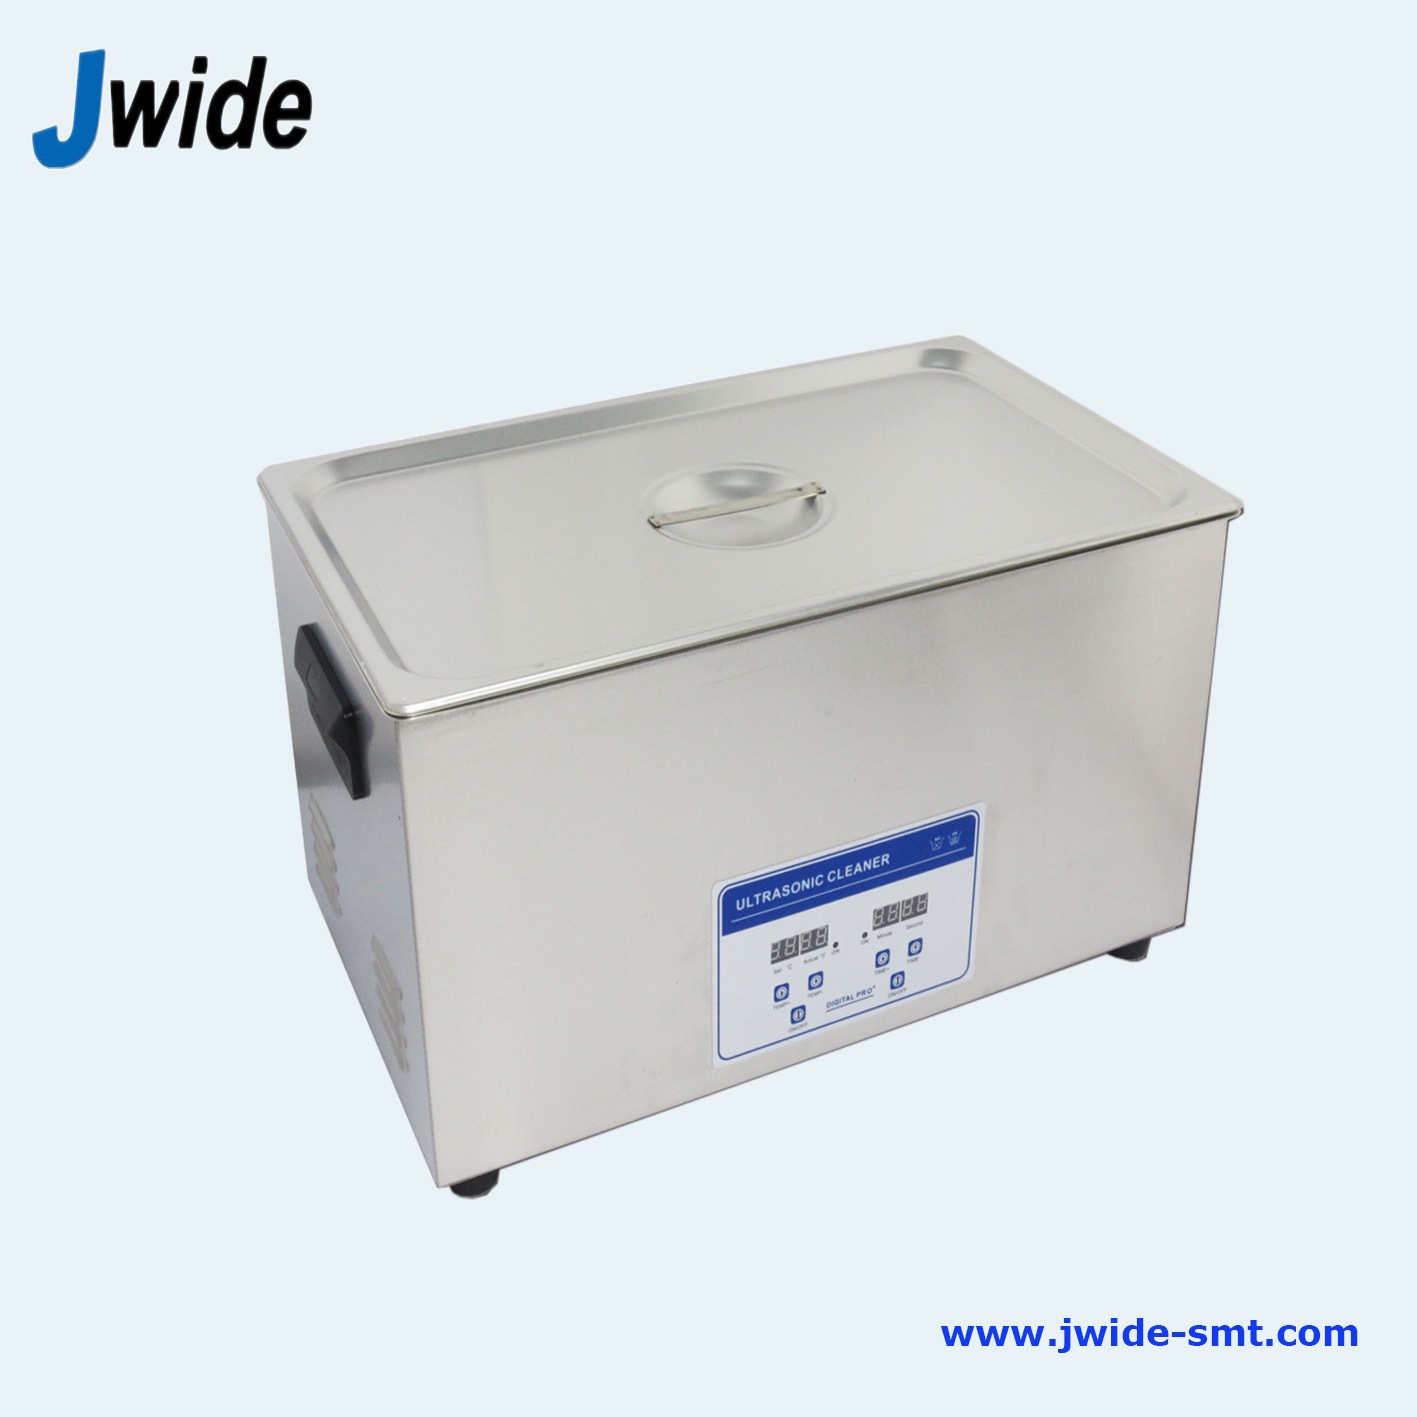 SMT Digital Ultrasonic Cleaning Equipment